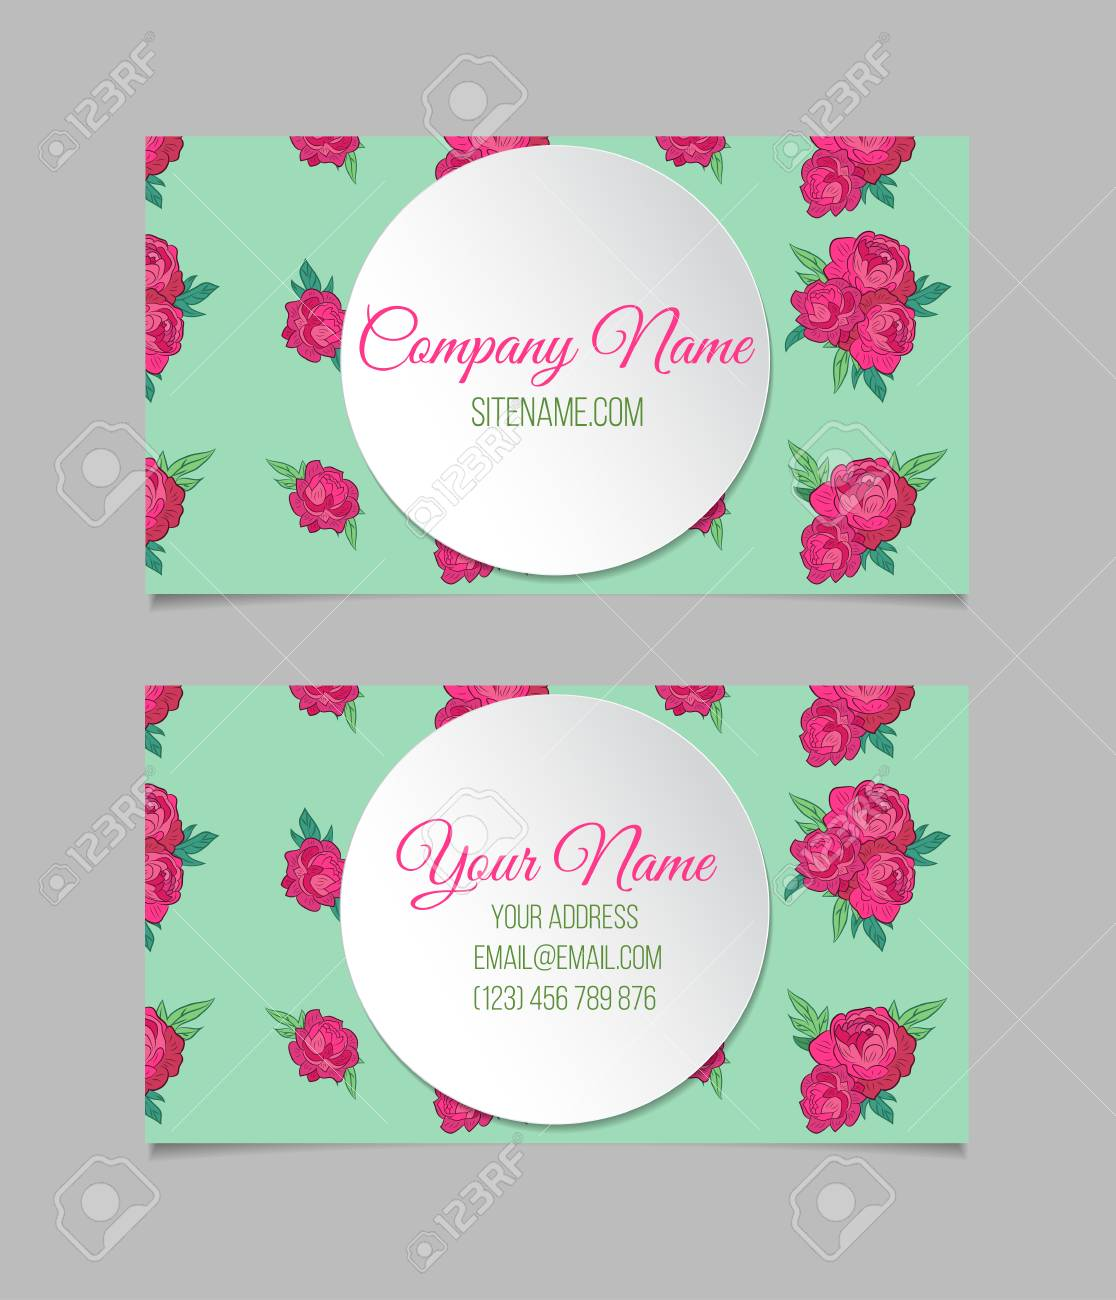 Double-sided Floral Business Card Template With Peonies And Round ...